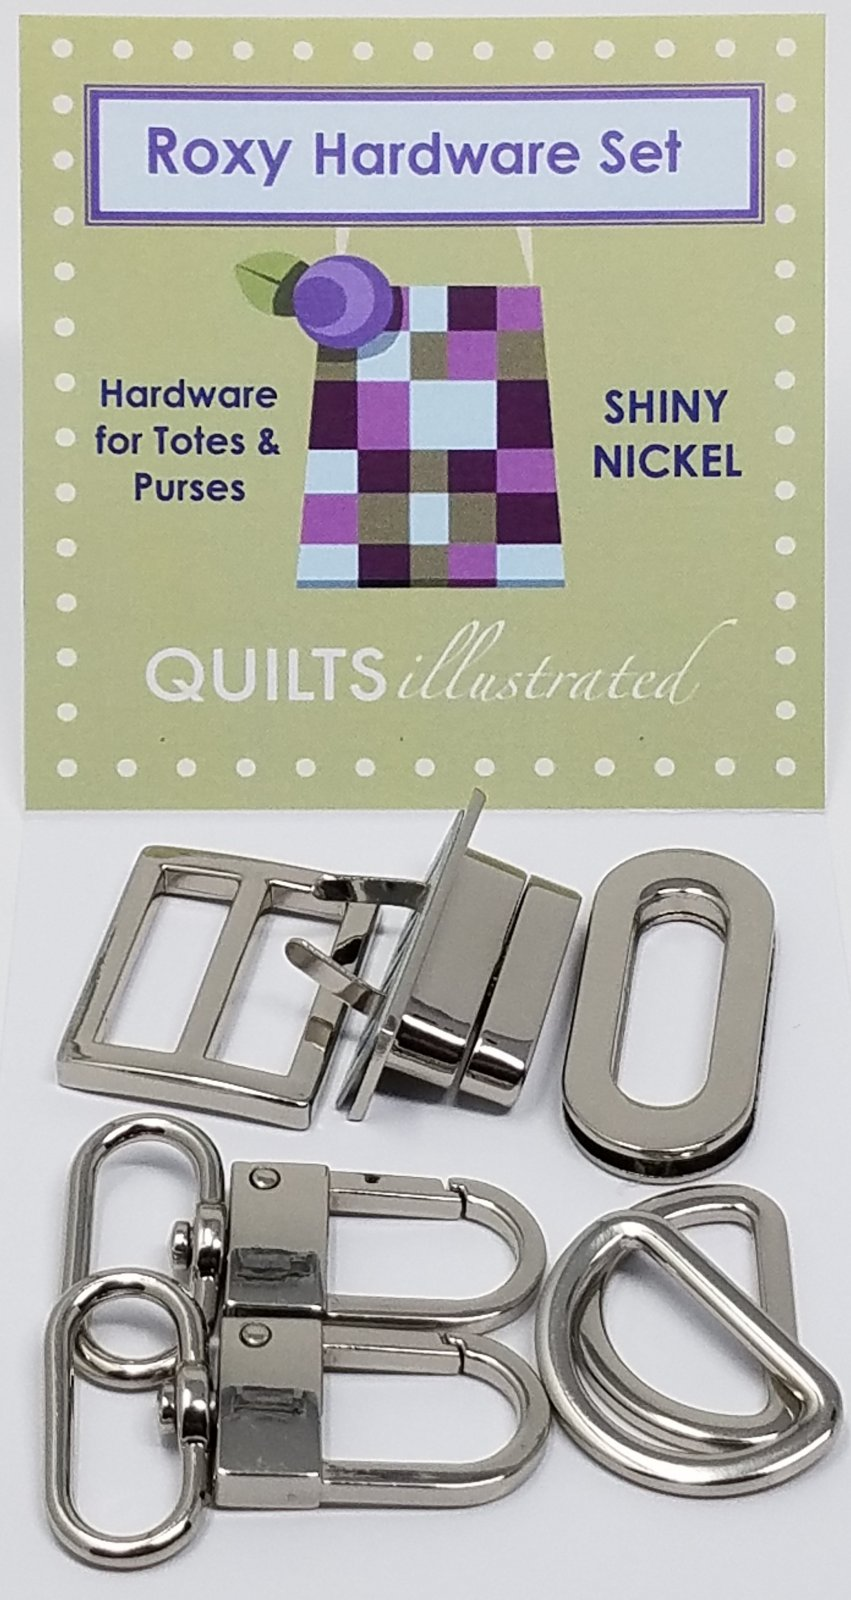 Roxy Hardware Set--Shiny Nickel (psh037)